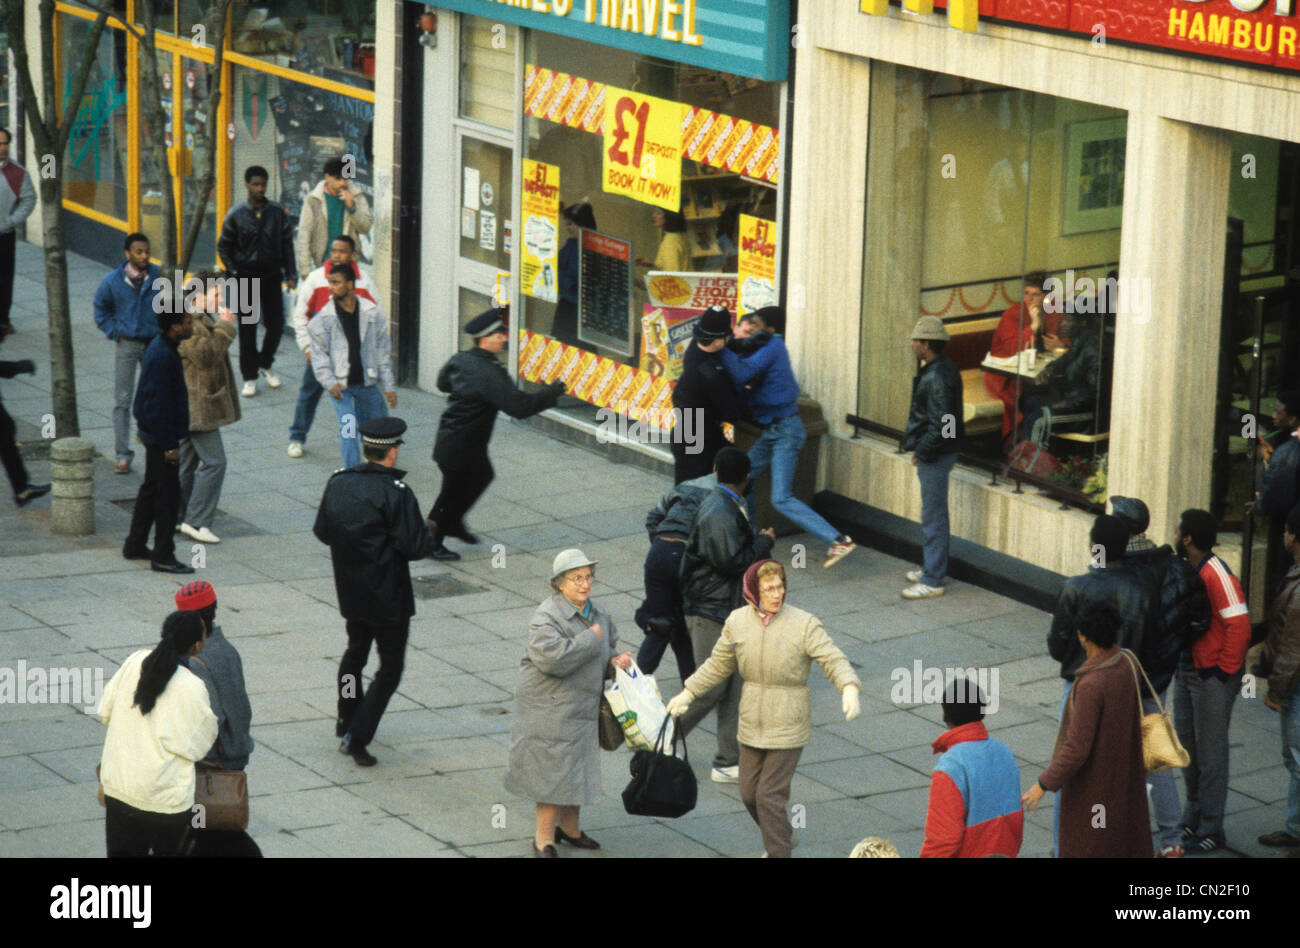 Police offcers and youths clash in Dudley Street Wolverhampton following the death of Clinton McCurbin 20/2/87 - Stock Image